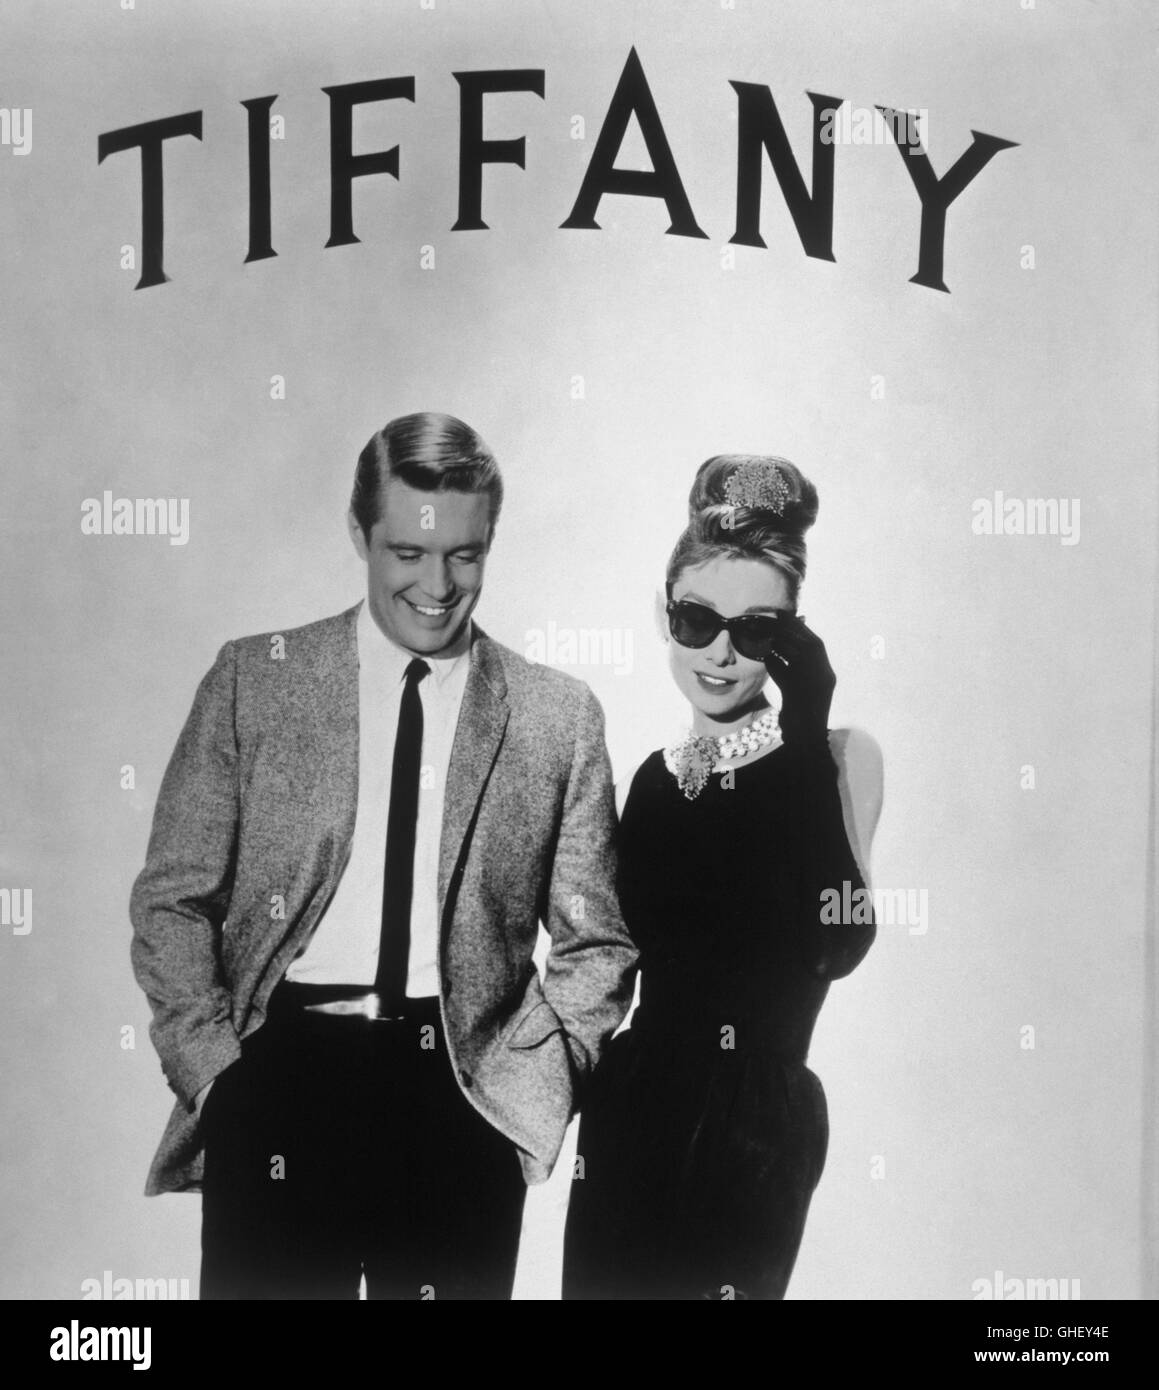 fr hst ck bei tiffany breakfast at tiffany 39 s usa 1961 blake edwards stock photo royalty free. Black Bedroom Furniture Sets. Home Design Ideas